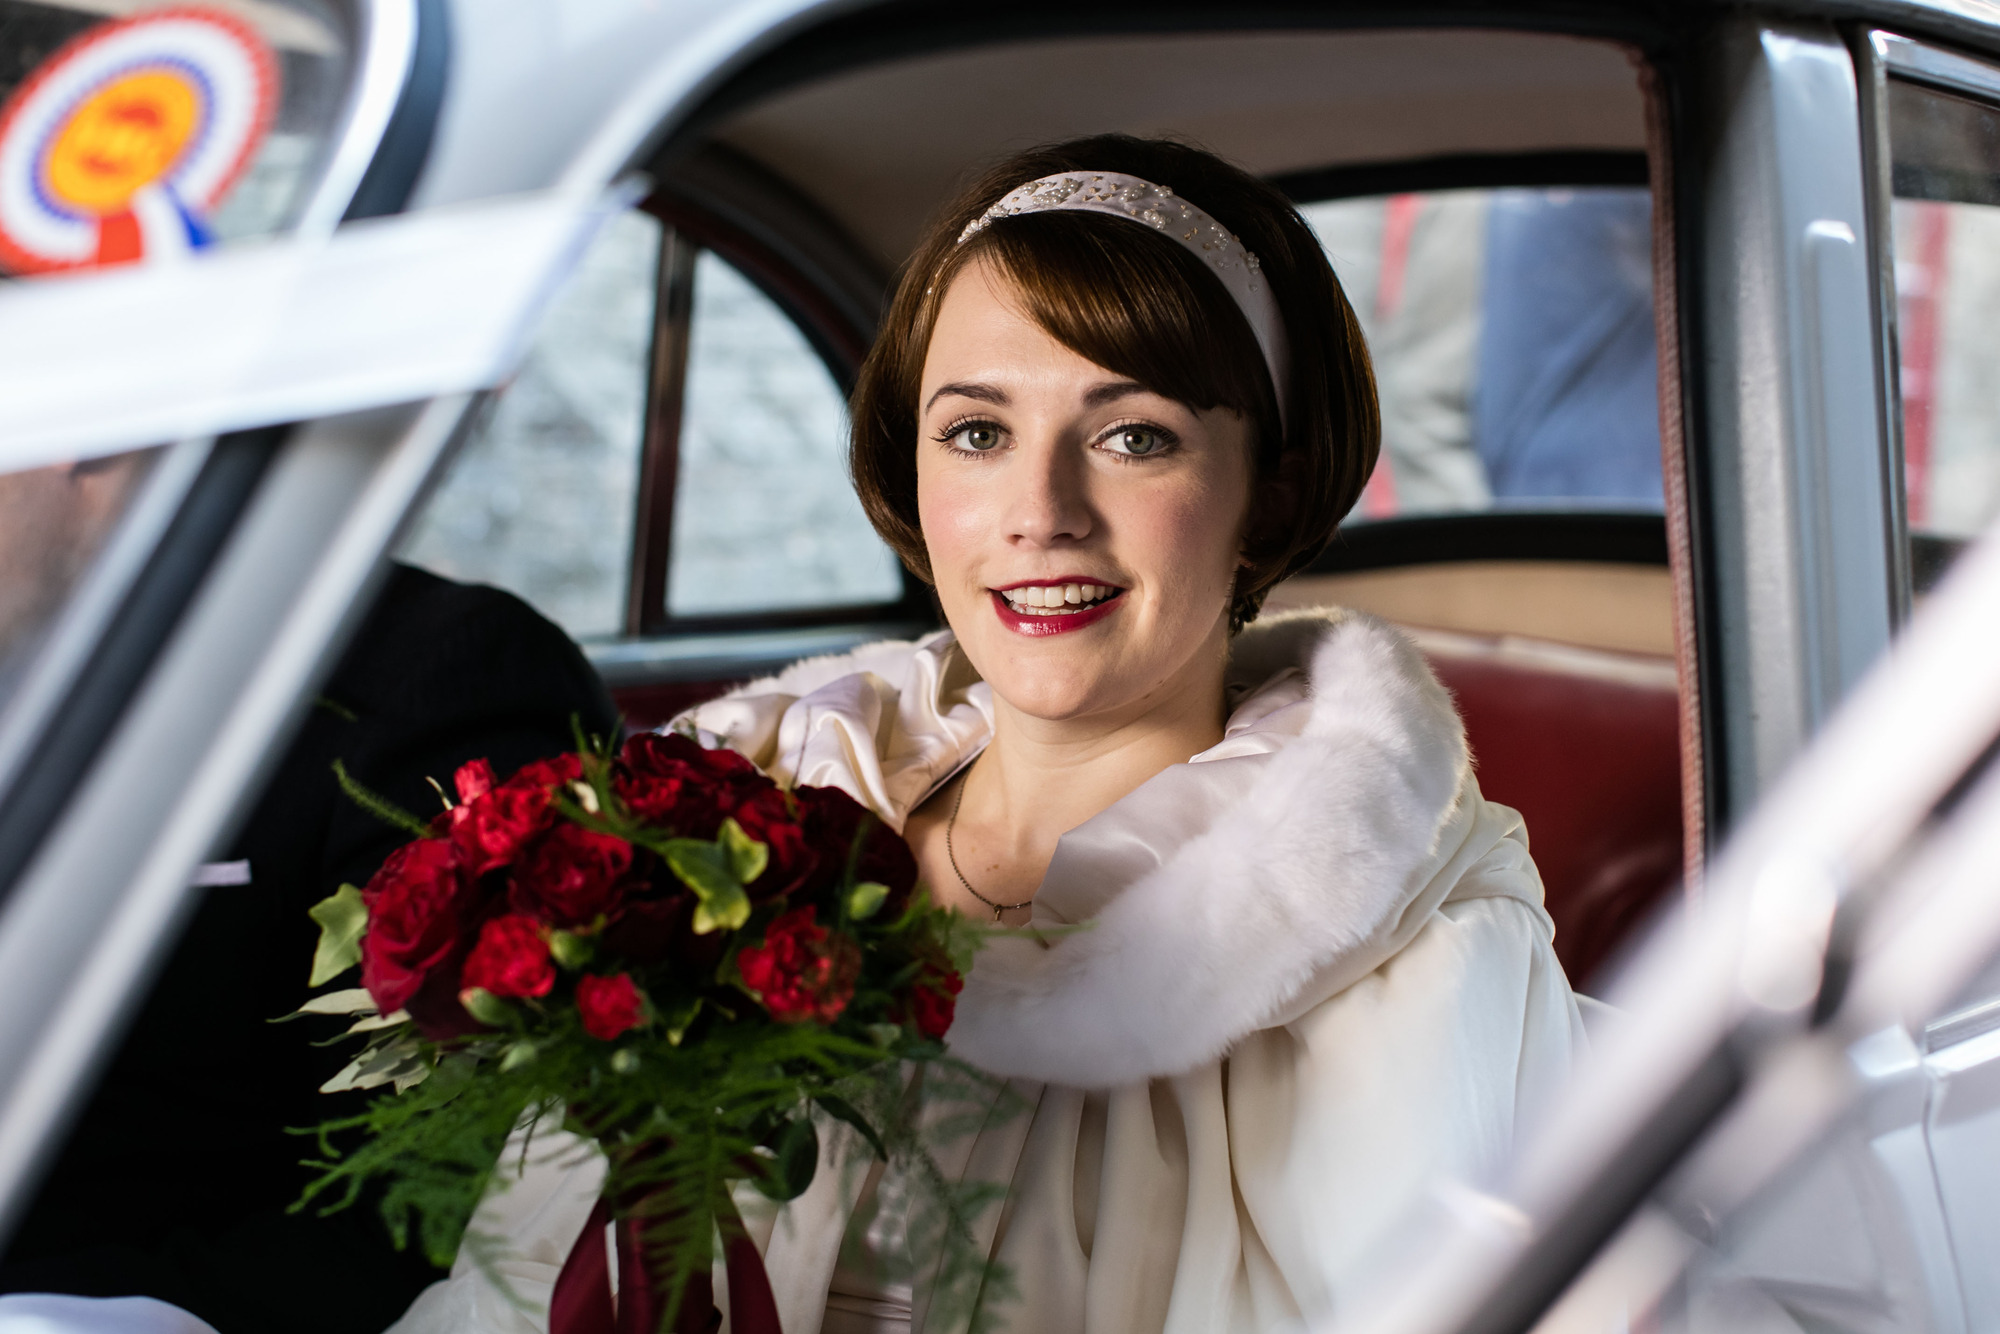 What happened to Call The Midwife's Nurse Barbara Hereward?